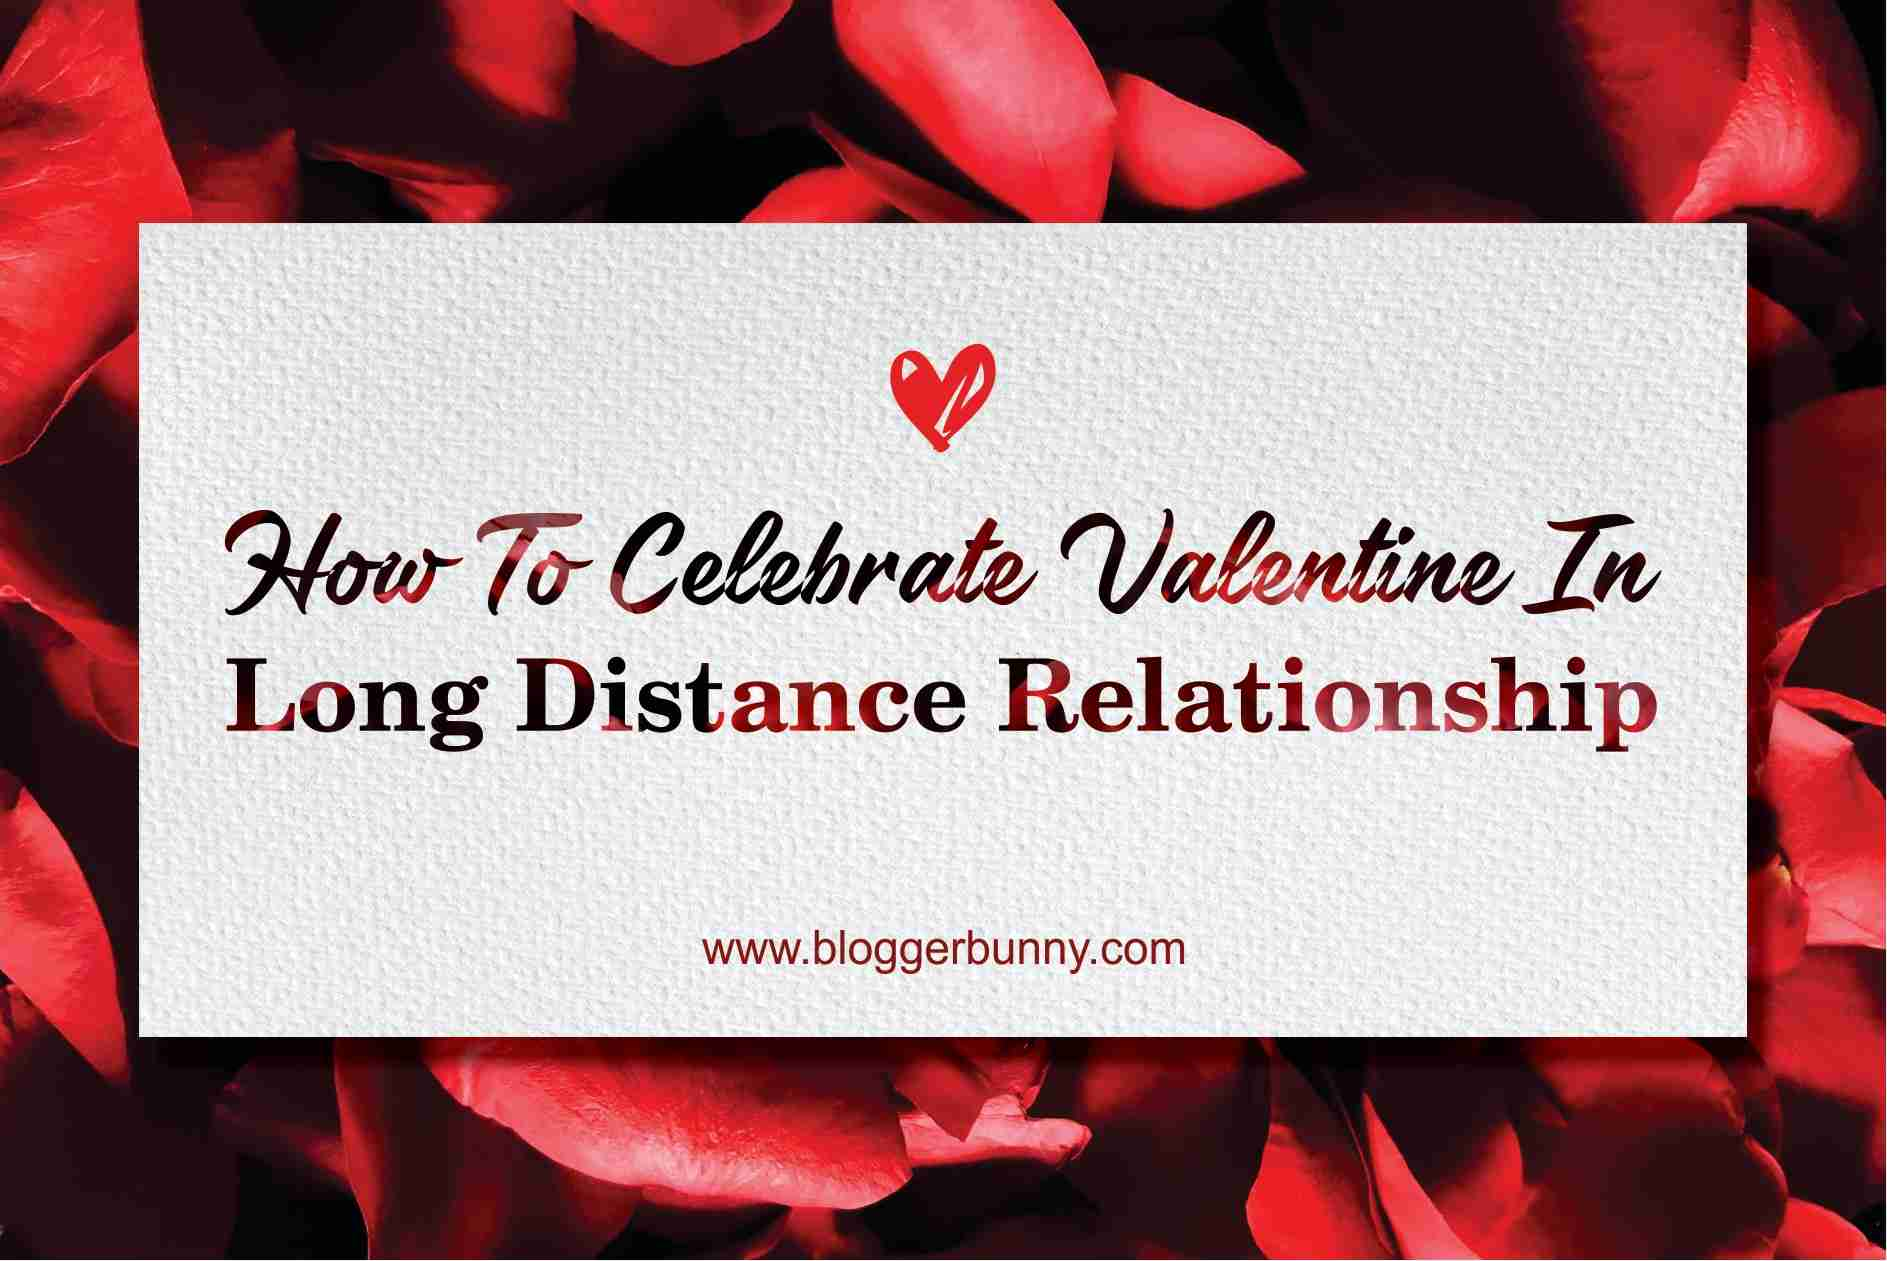 How to Celebrate Valentine in Long Distance Relationship